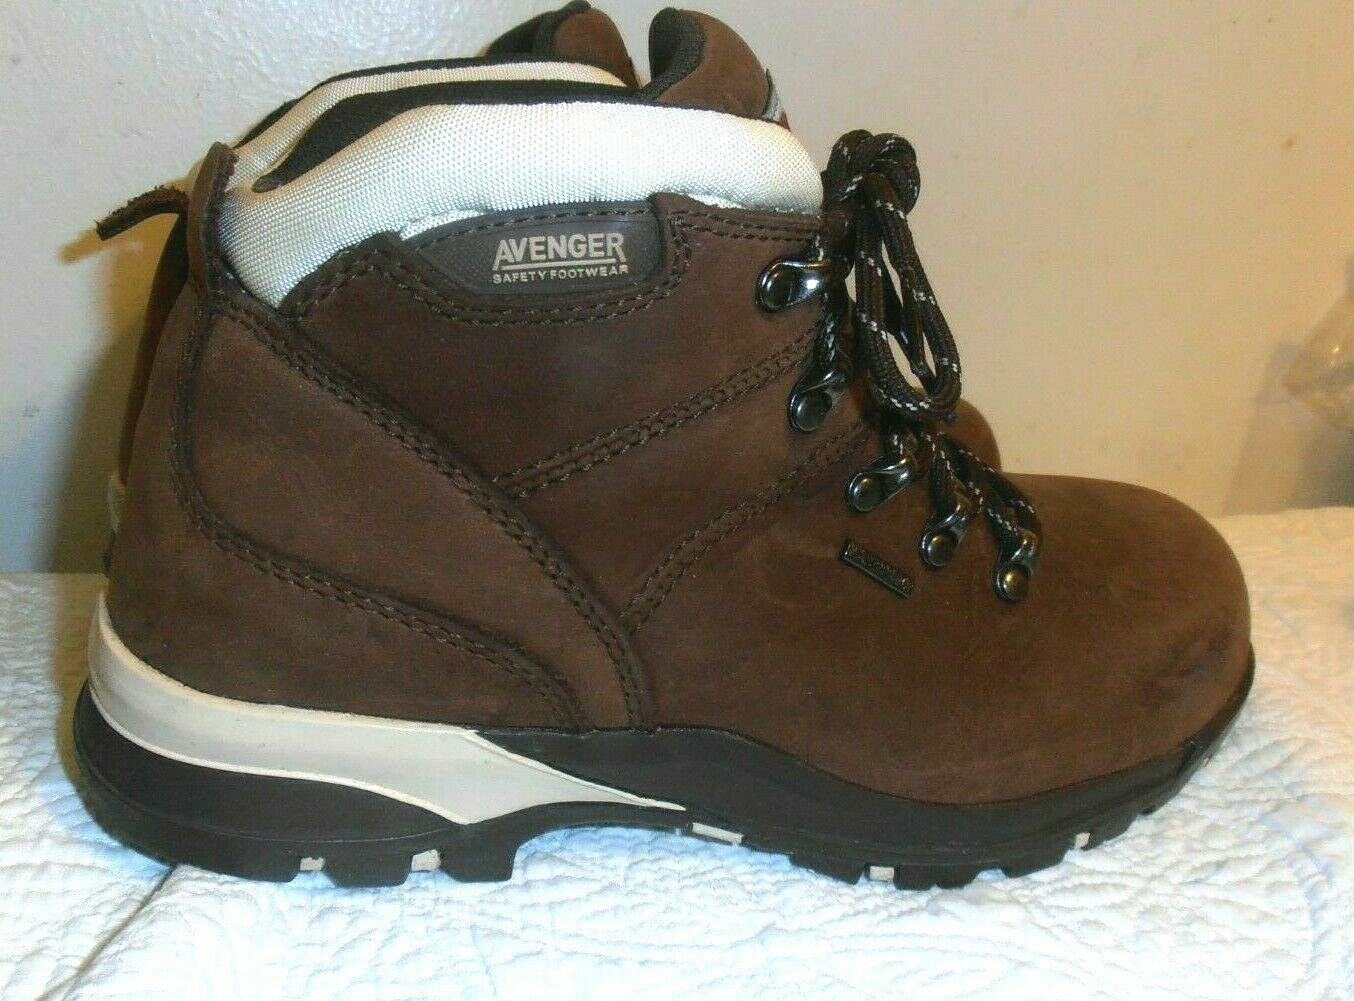 Avenger Women's Composite Toe Hiker Size US 8 M Waterproof Leather Boots A7156